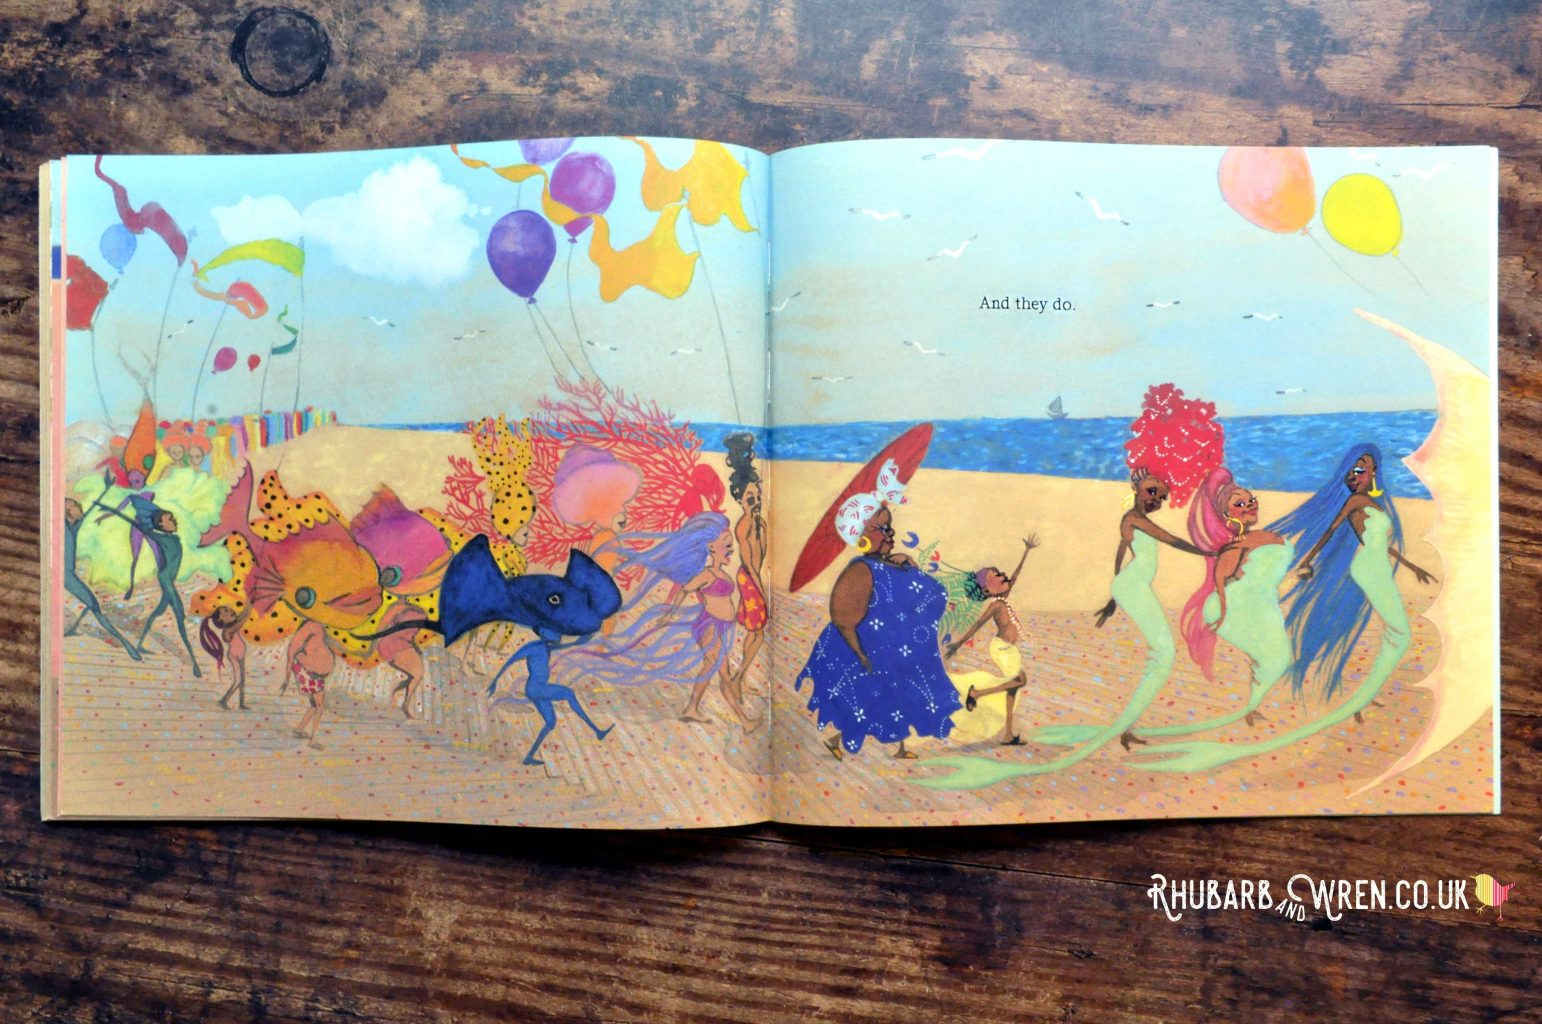 A page from the children's picture book 'Julian is a Mermaid' showing Julian dressed as a mermaid and taking part in the Coney Island Mermaid Parade.